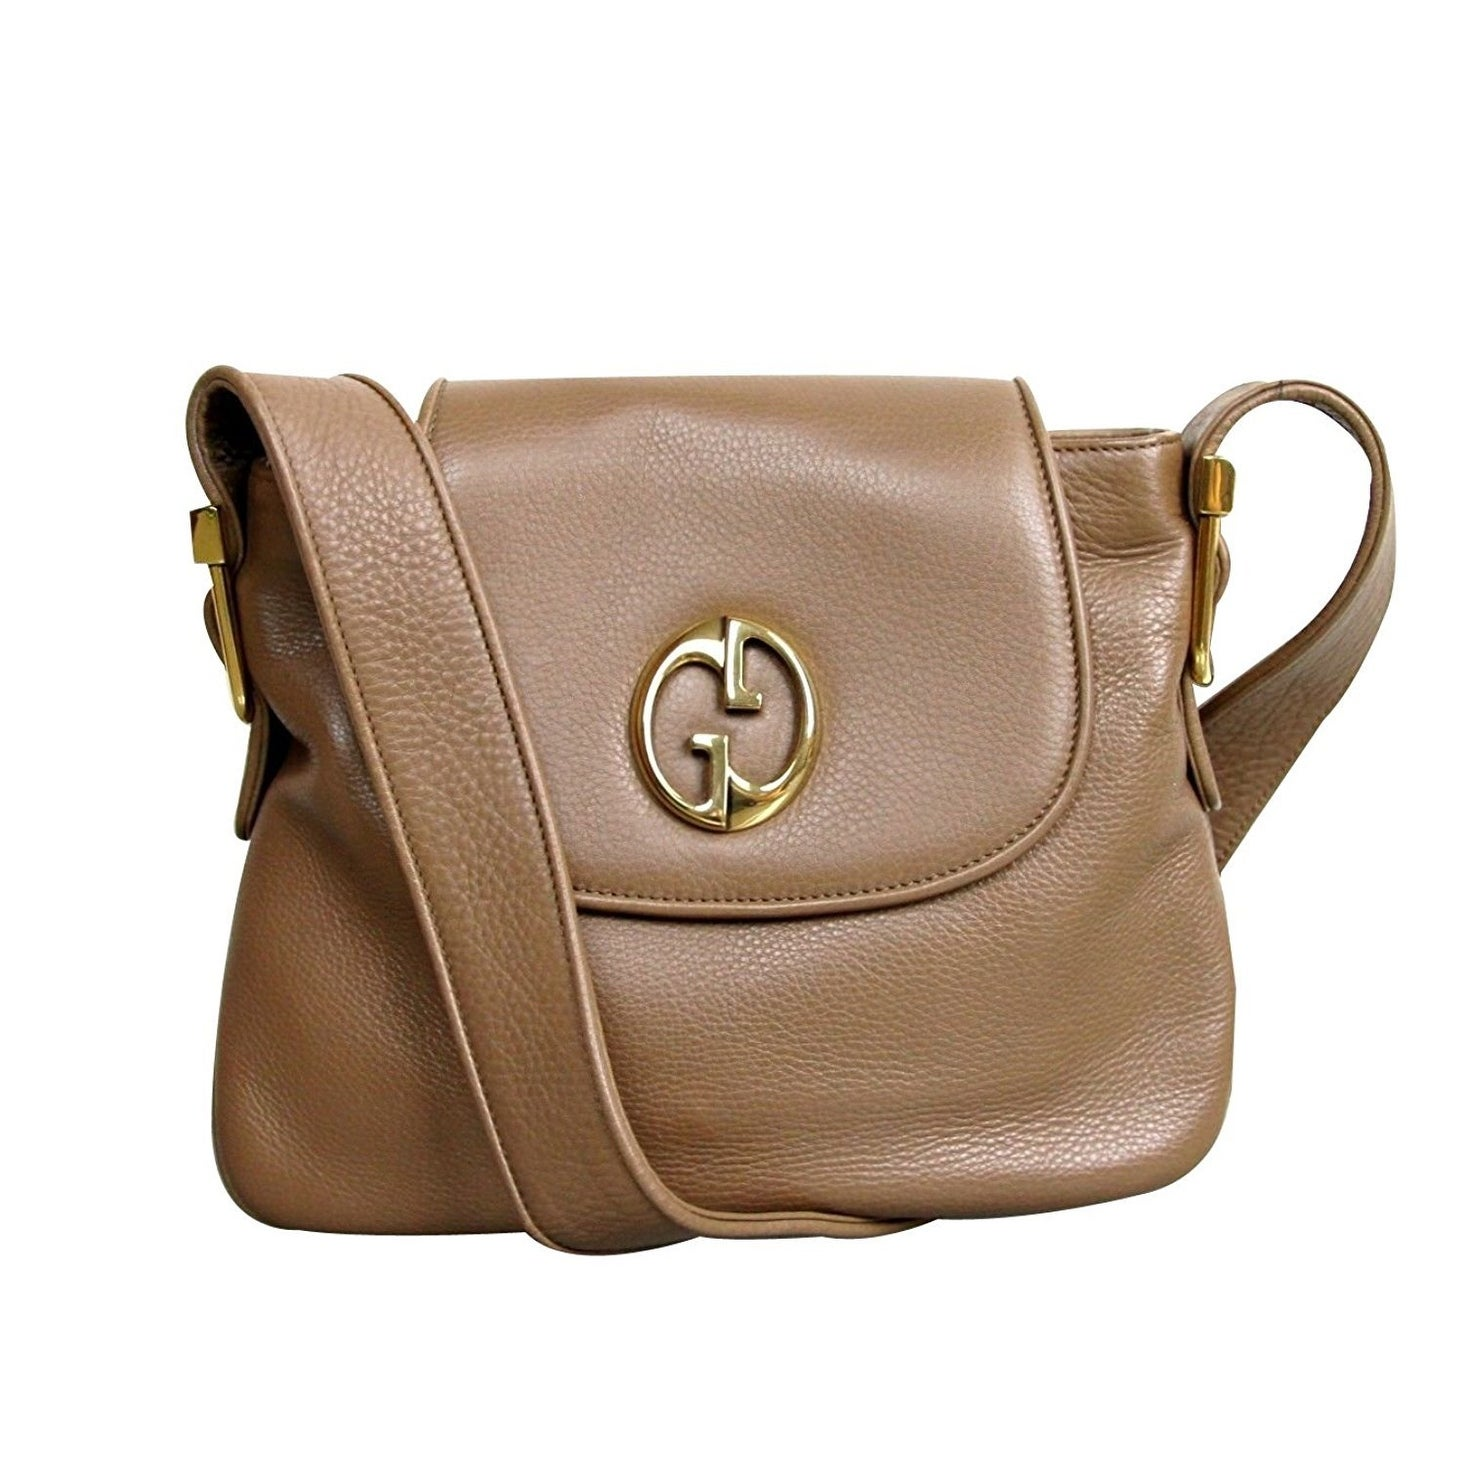 67bb79c6dca87a Shop Gucci Womens 1973 Brown Leather Shoulder Bag Handbag 251809 - One size  - Free Shipping Today - Overstock - 27603143